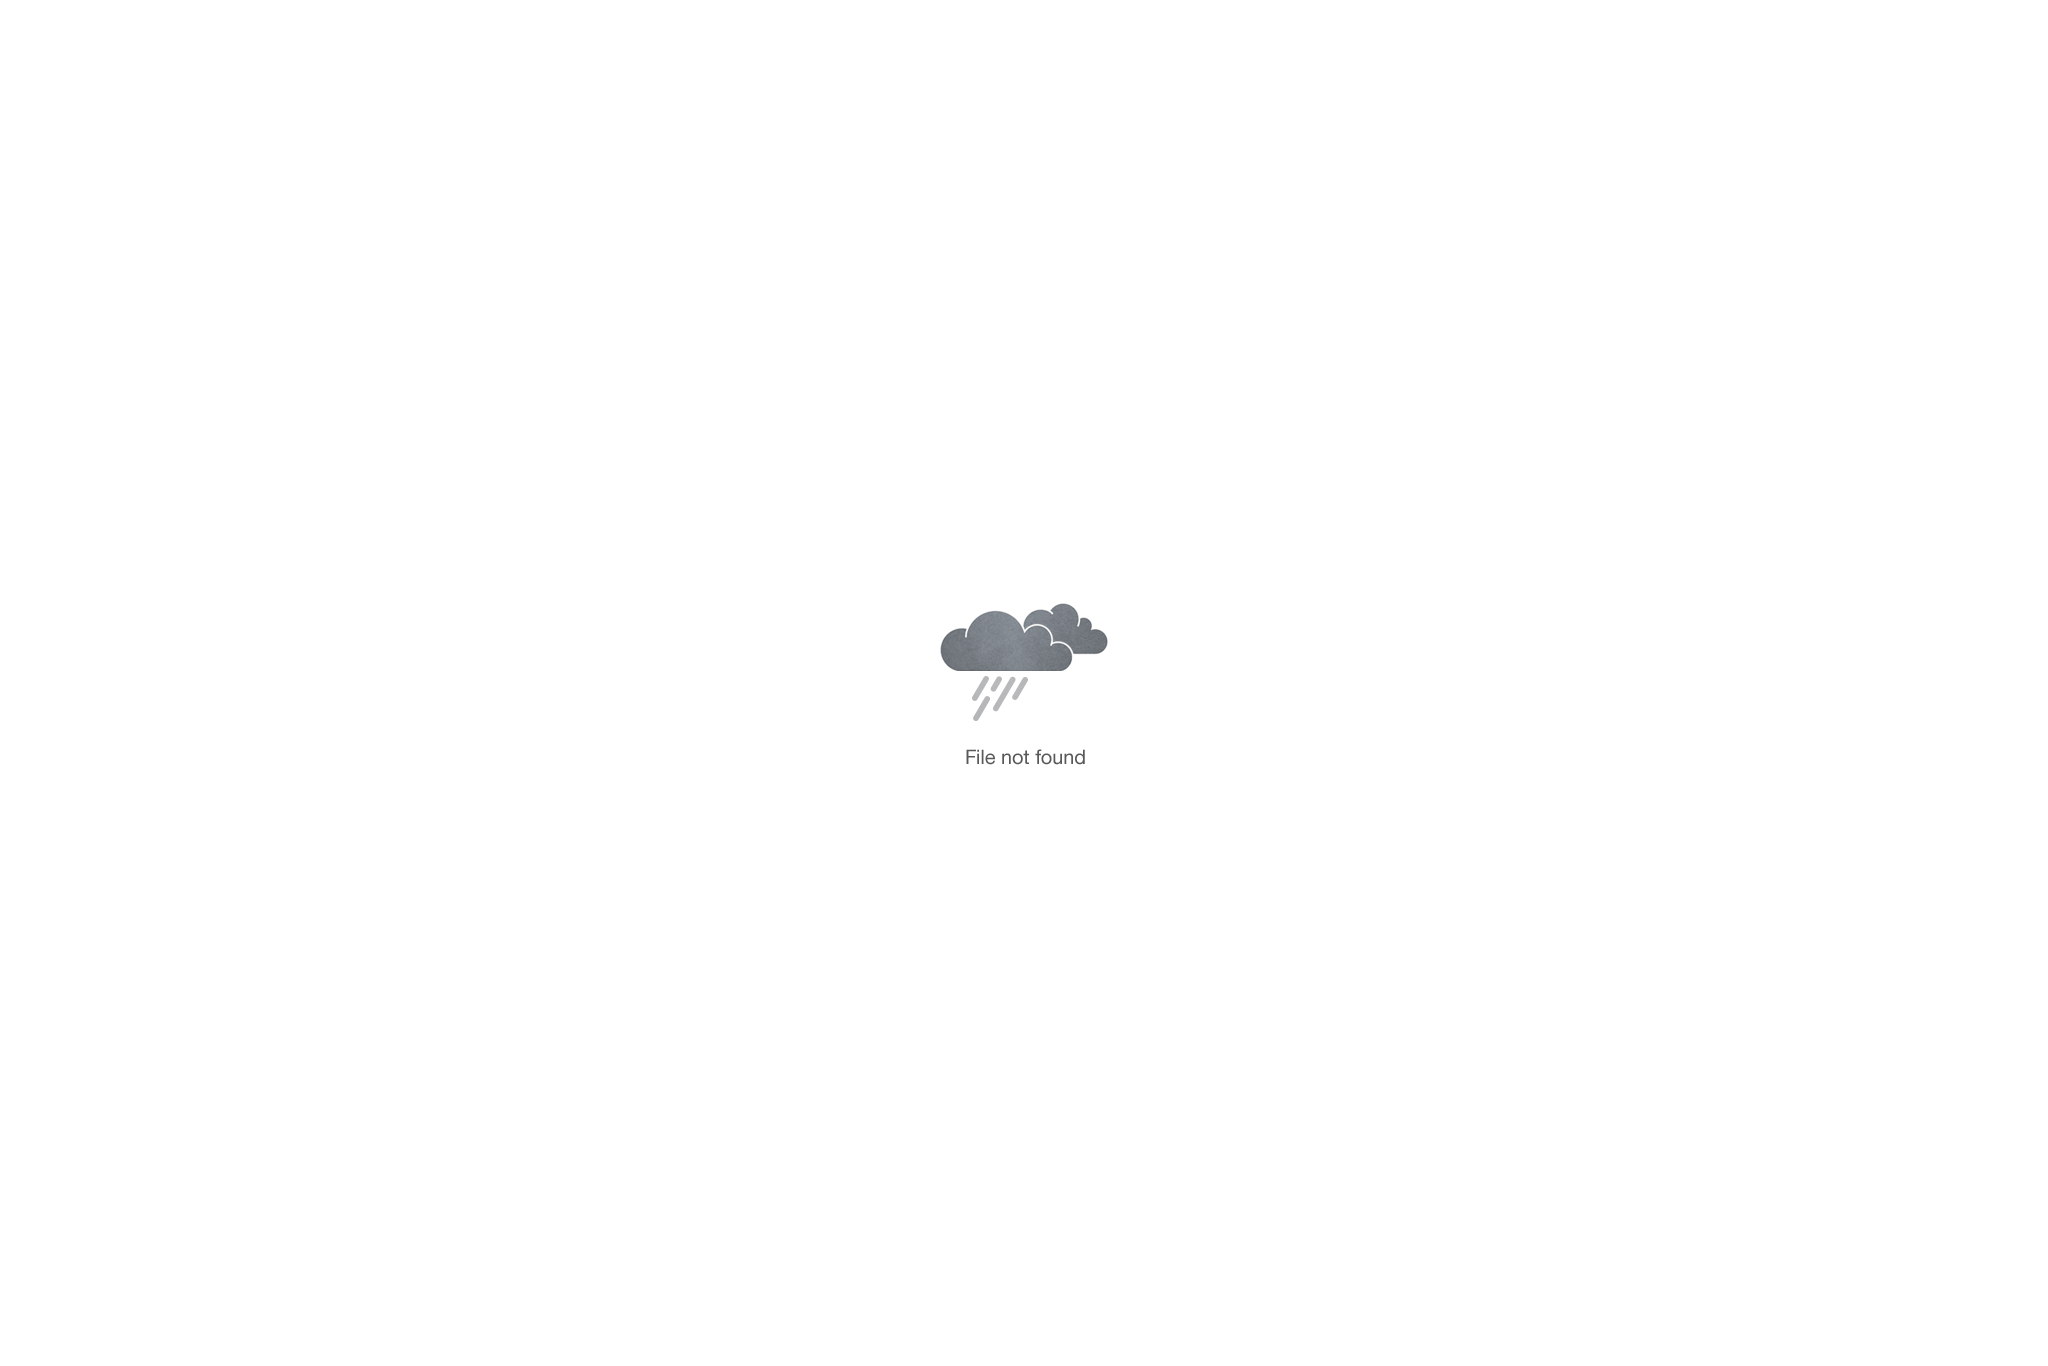 Equipe 1 féminine-Prénational - Chambery Volley Ball-Volley-Ball-Sponsorise-me-image-1